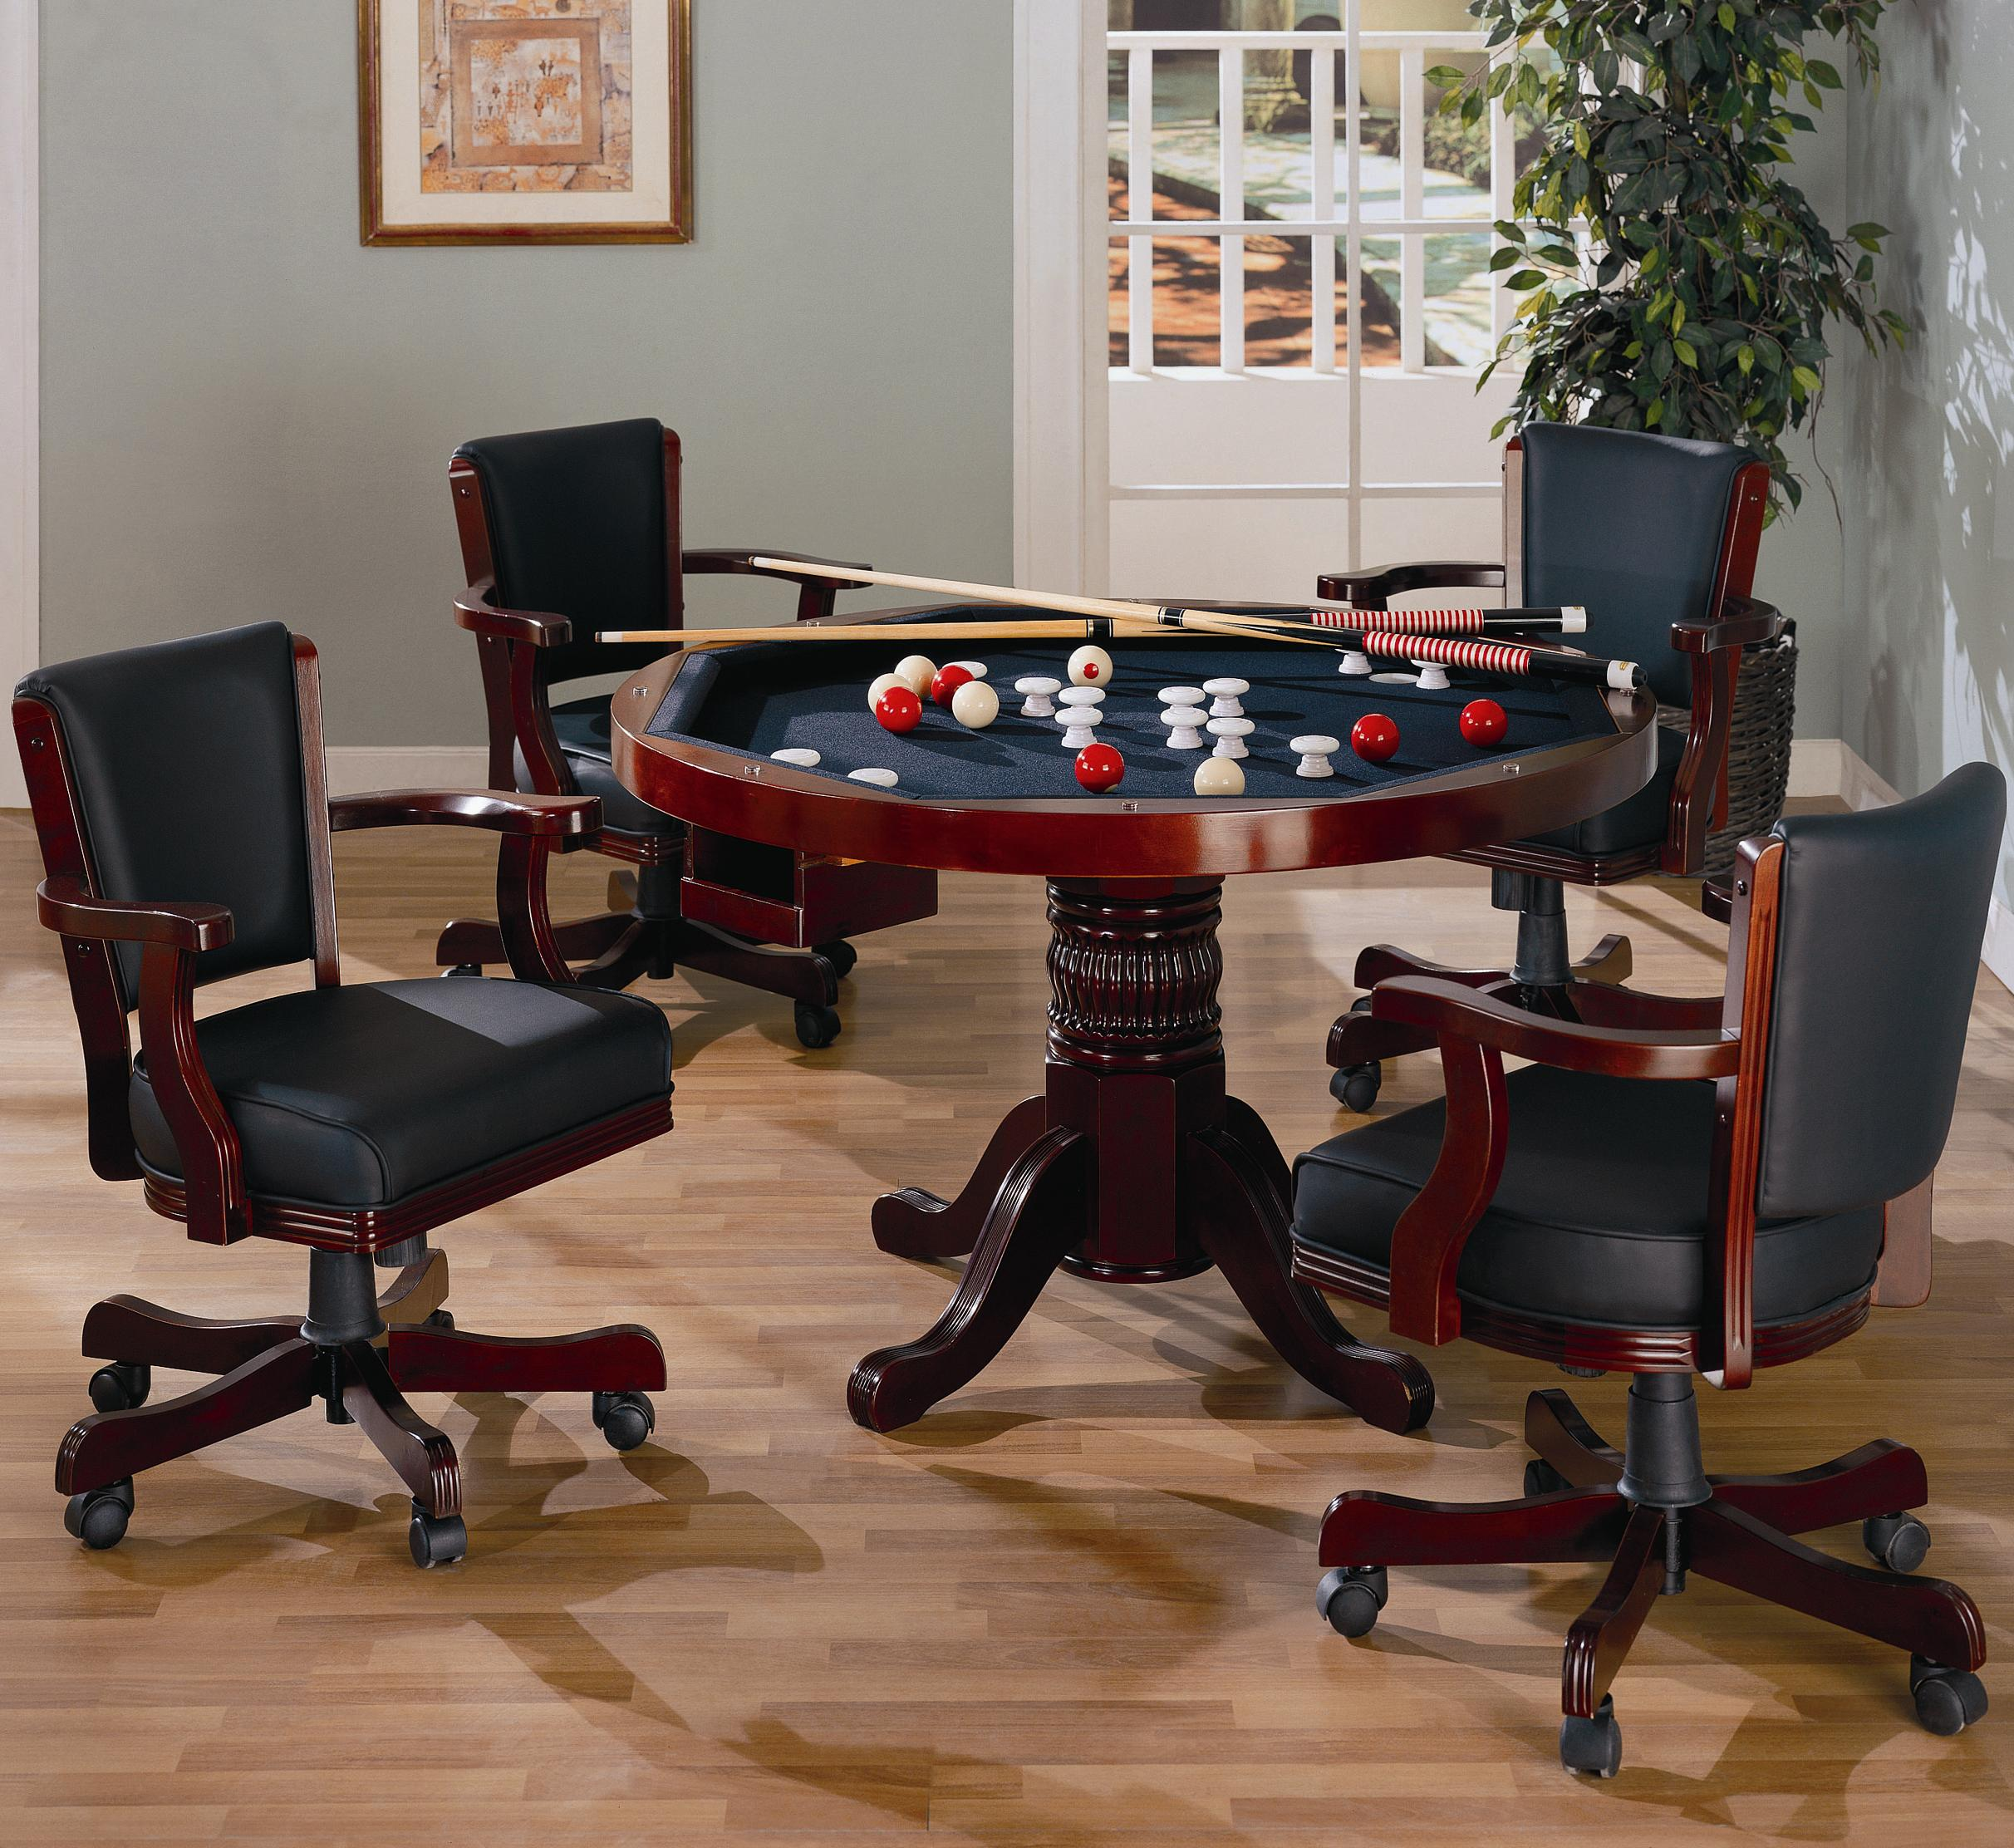 Poker table chairs cheap totally crazy gambling stories